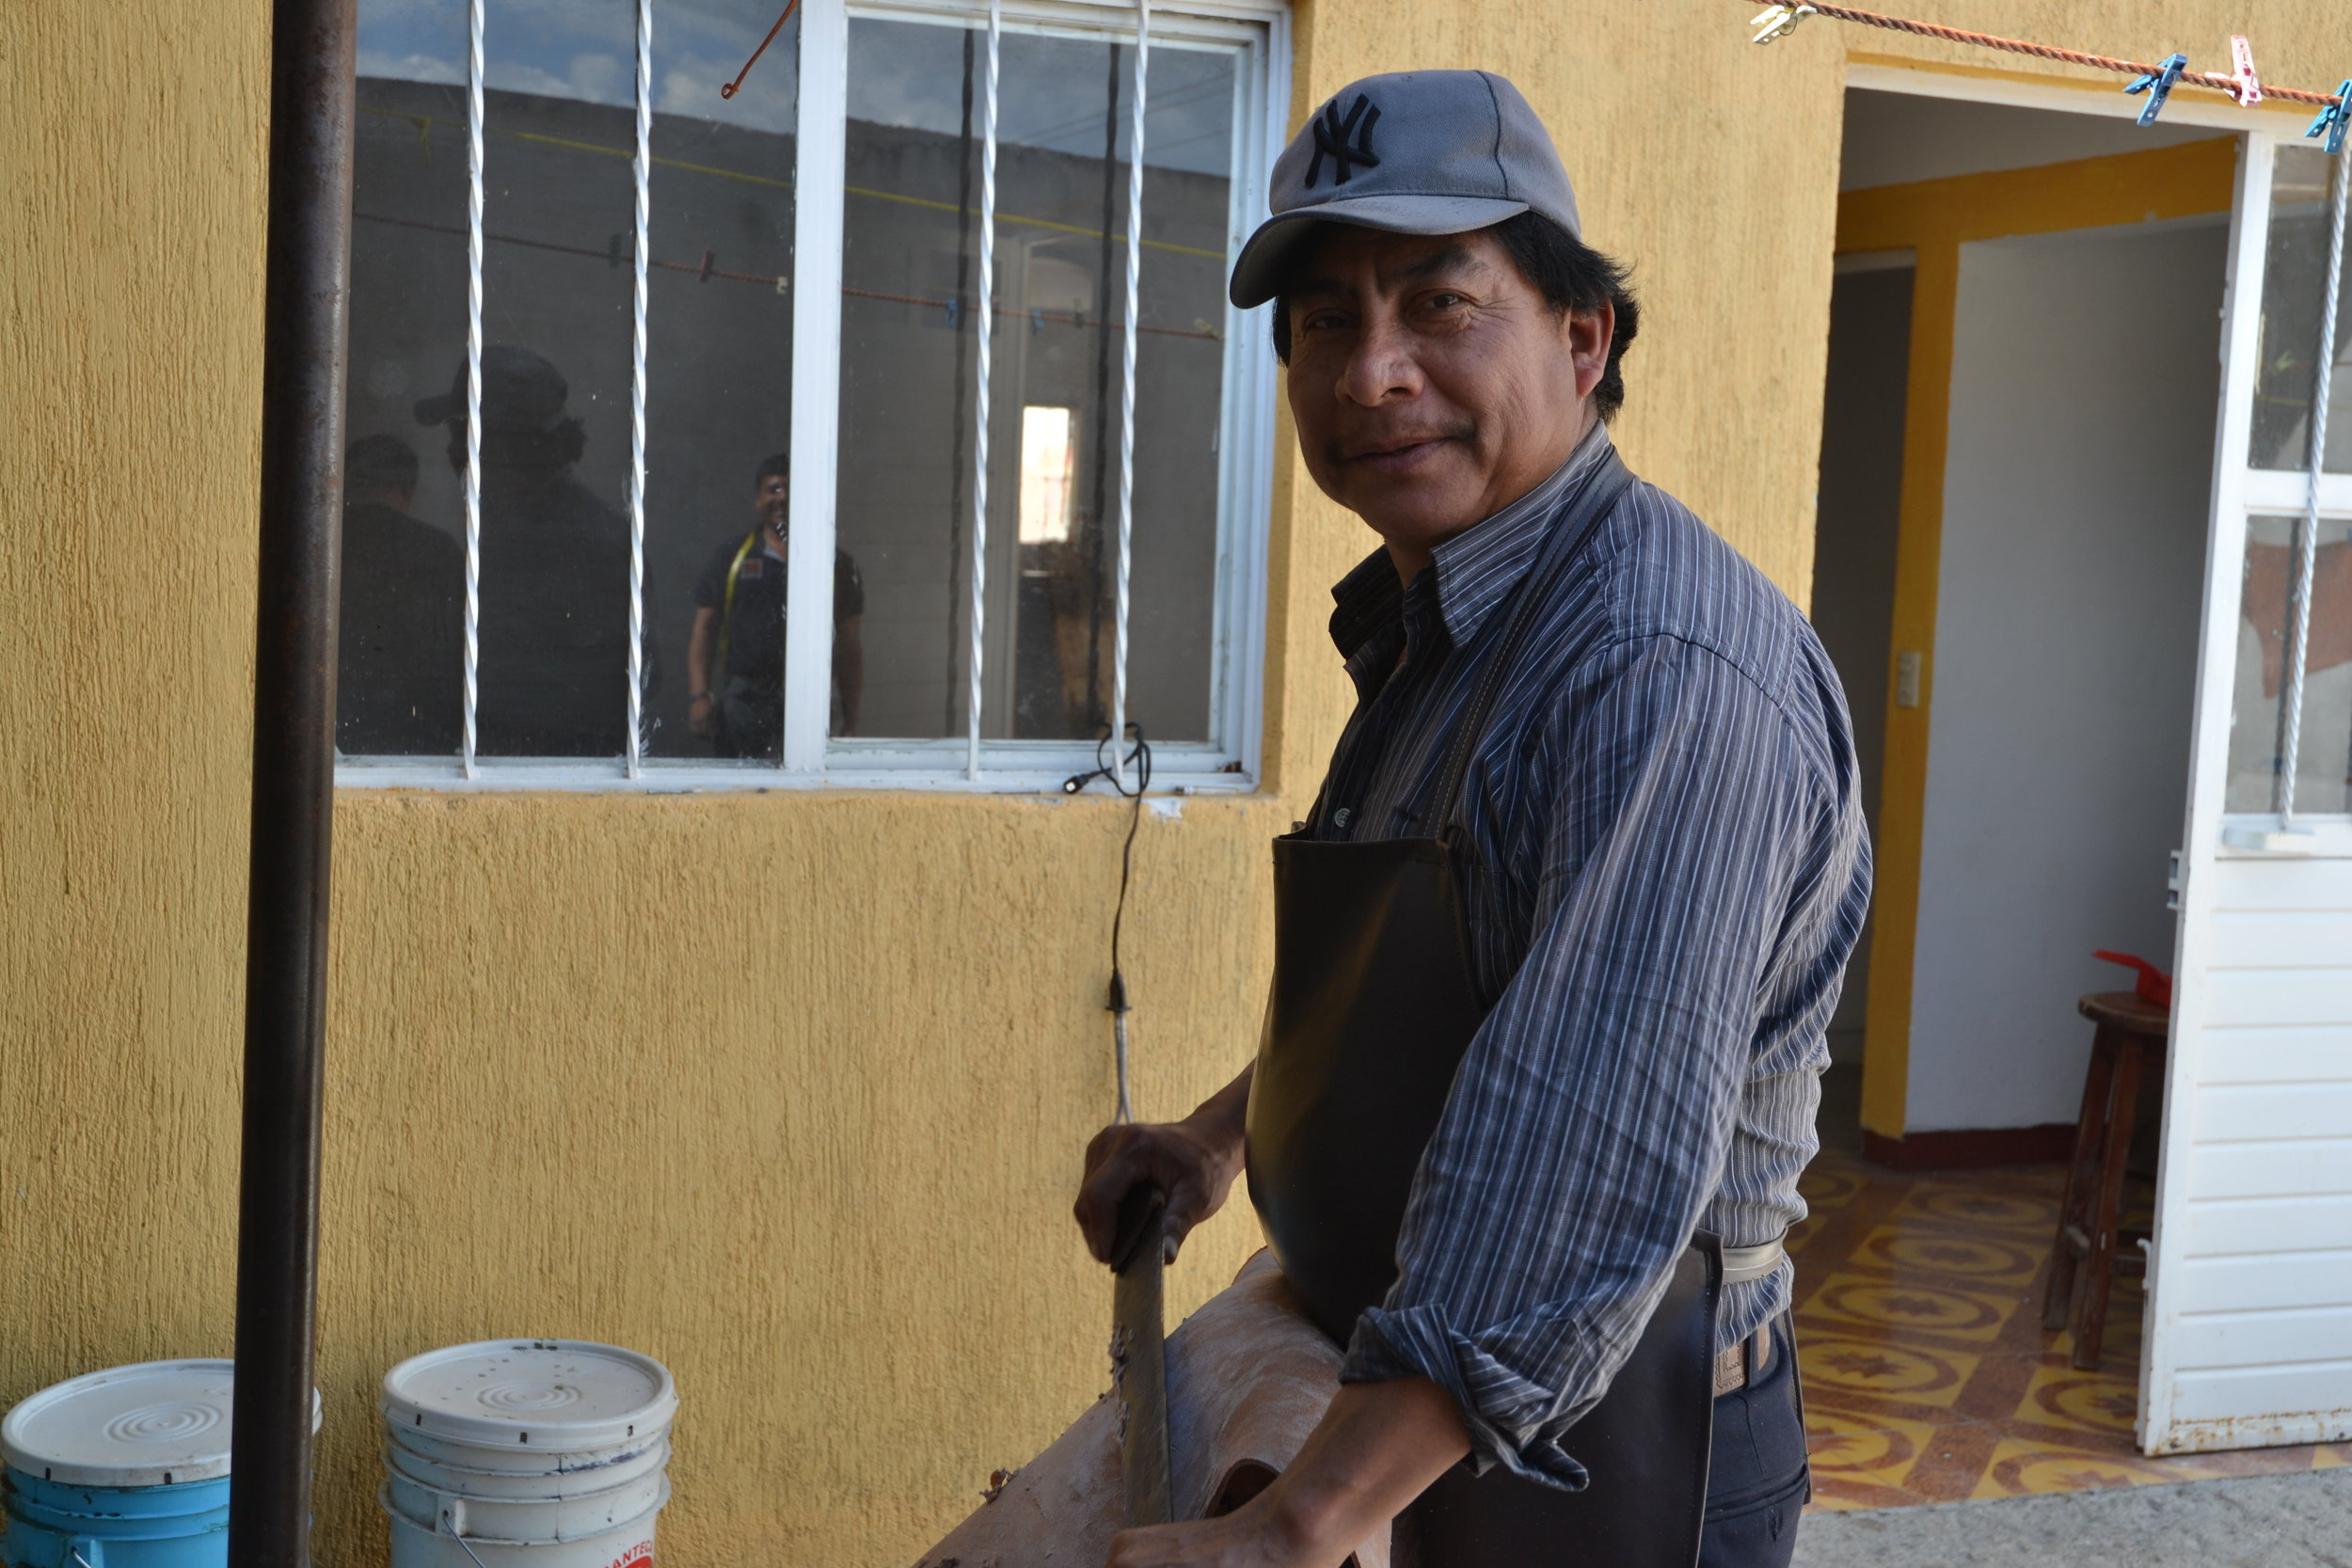 Maestro Caralampio has been a leather worker for 26 years. He learned how to work with leather when he was 11 and grew up with his uncle who was one of the first men in Chiapas that began treating leather and making handbags.